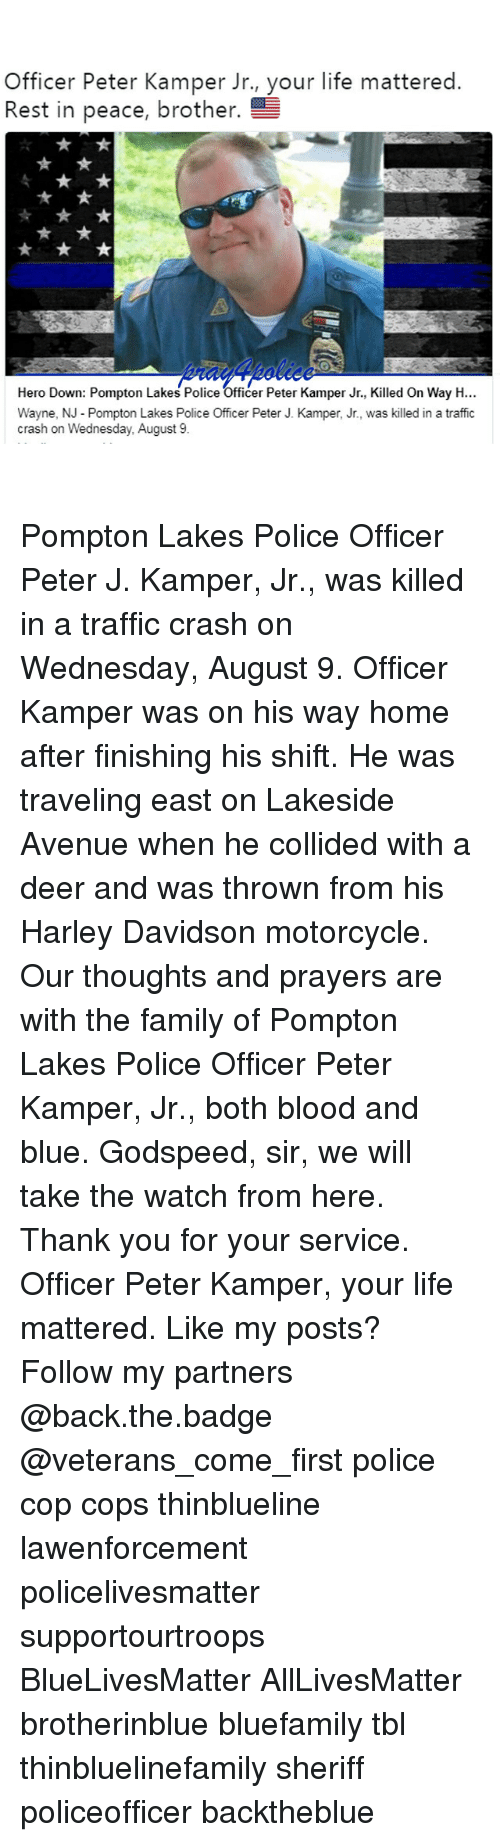 All Lives Matter, Bloods, and Deer: Officer Peter Kamper Jr., your life mattered  Rest in peace, brother.  Hero Down: Pompton Lakes Police Officer Peter Kamper Jr., Killed On Way H...  Wayne, N Pompton Lakes Police Officer Peter J. Kamper, Jr., was killed in a traffic  crash on Wednesday, August 9 Pompton Lakes Police Officer Peter J. Kamper, Jr., was killed in a traffic crash on Wednesday, August 9. Officer Kamper was on his way home after finishing his shift. He was traveling east on Lakeside Avenue when he collided with a deer and was thrown from his Harley Davidson motorcycle. Our thoughts and prayers are with the family of Pompton Lakes Police Officer Peter Kamper, Jr., both blood and blue. Godspeed, sir, we will take the watch from here. Thank you for your service. Officer Peter Kamper, your life mattered. Like my posts? Follow my partners @back.the.badge @veterans_сome_first police cop cops thinblueline lawenforcement policelivesmatter supportourtroops BlueLivesMatter AllLivesMatter brotherinblue bluefamily tbl thinbluelinefamily sheriff policeofficer backtheblue